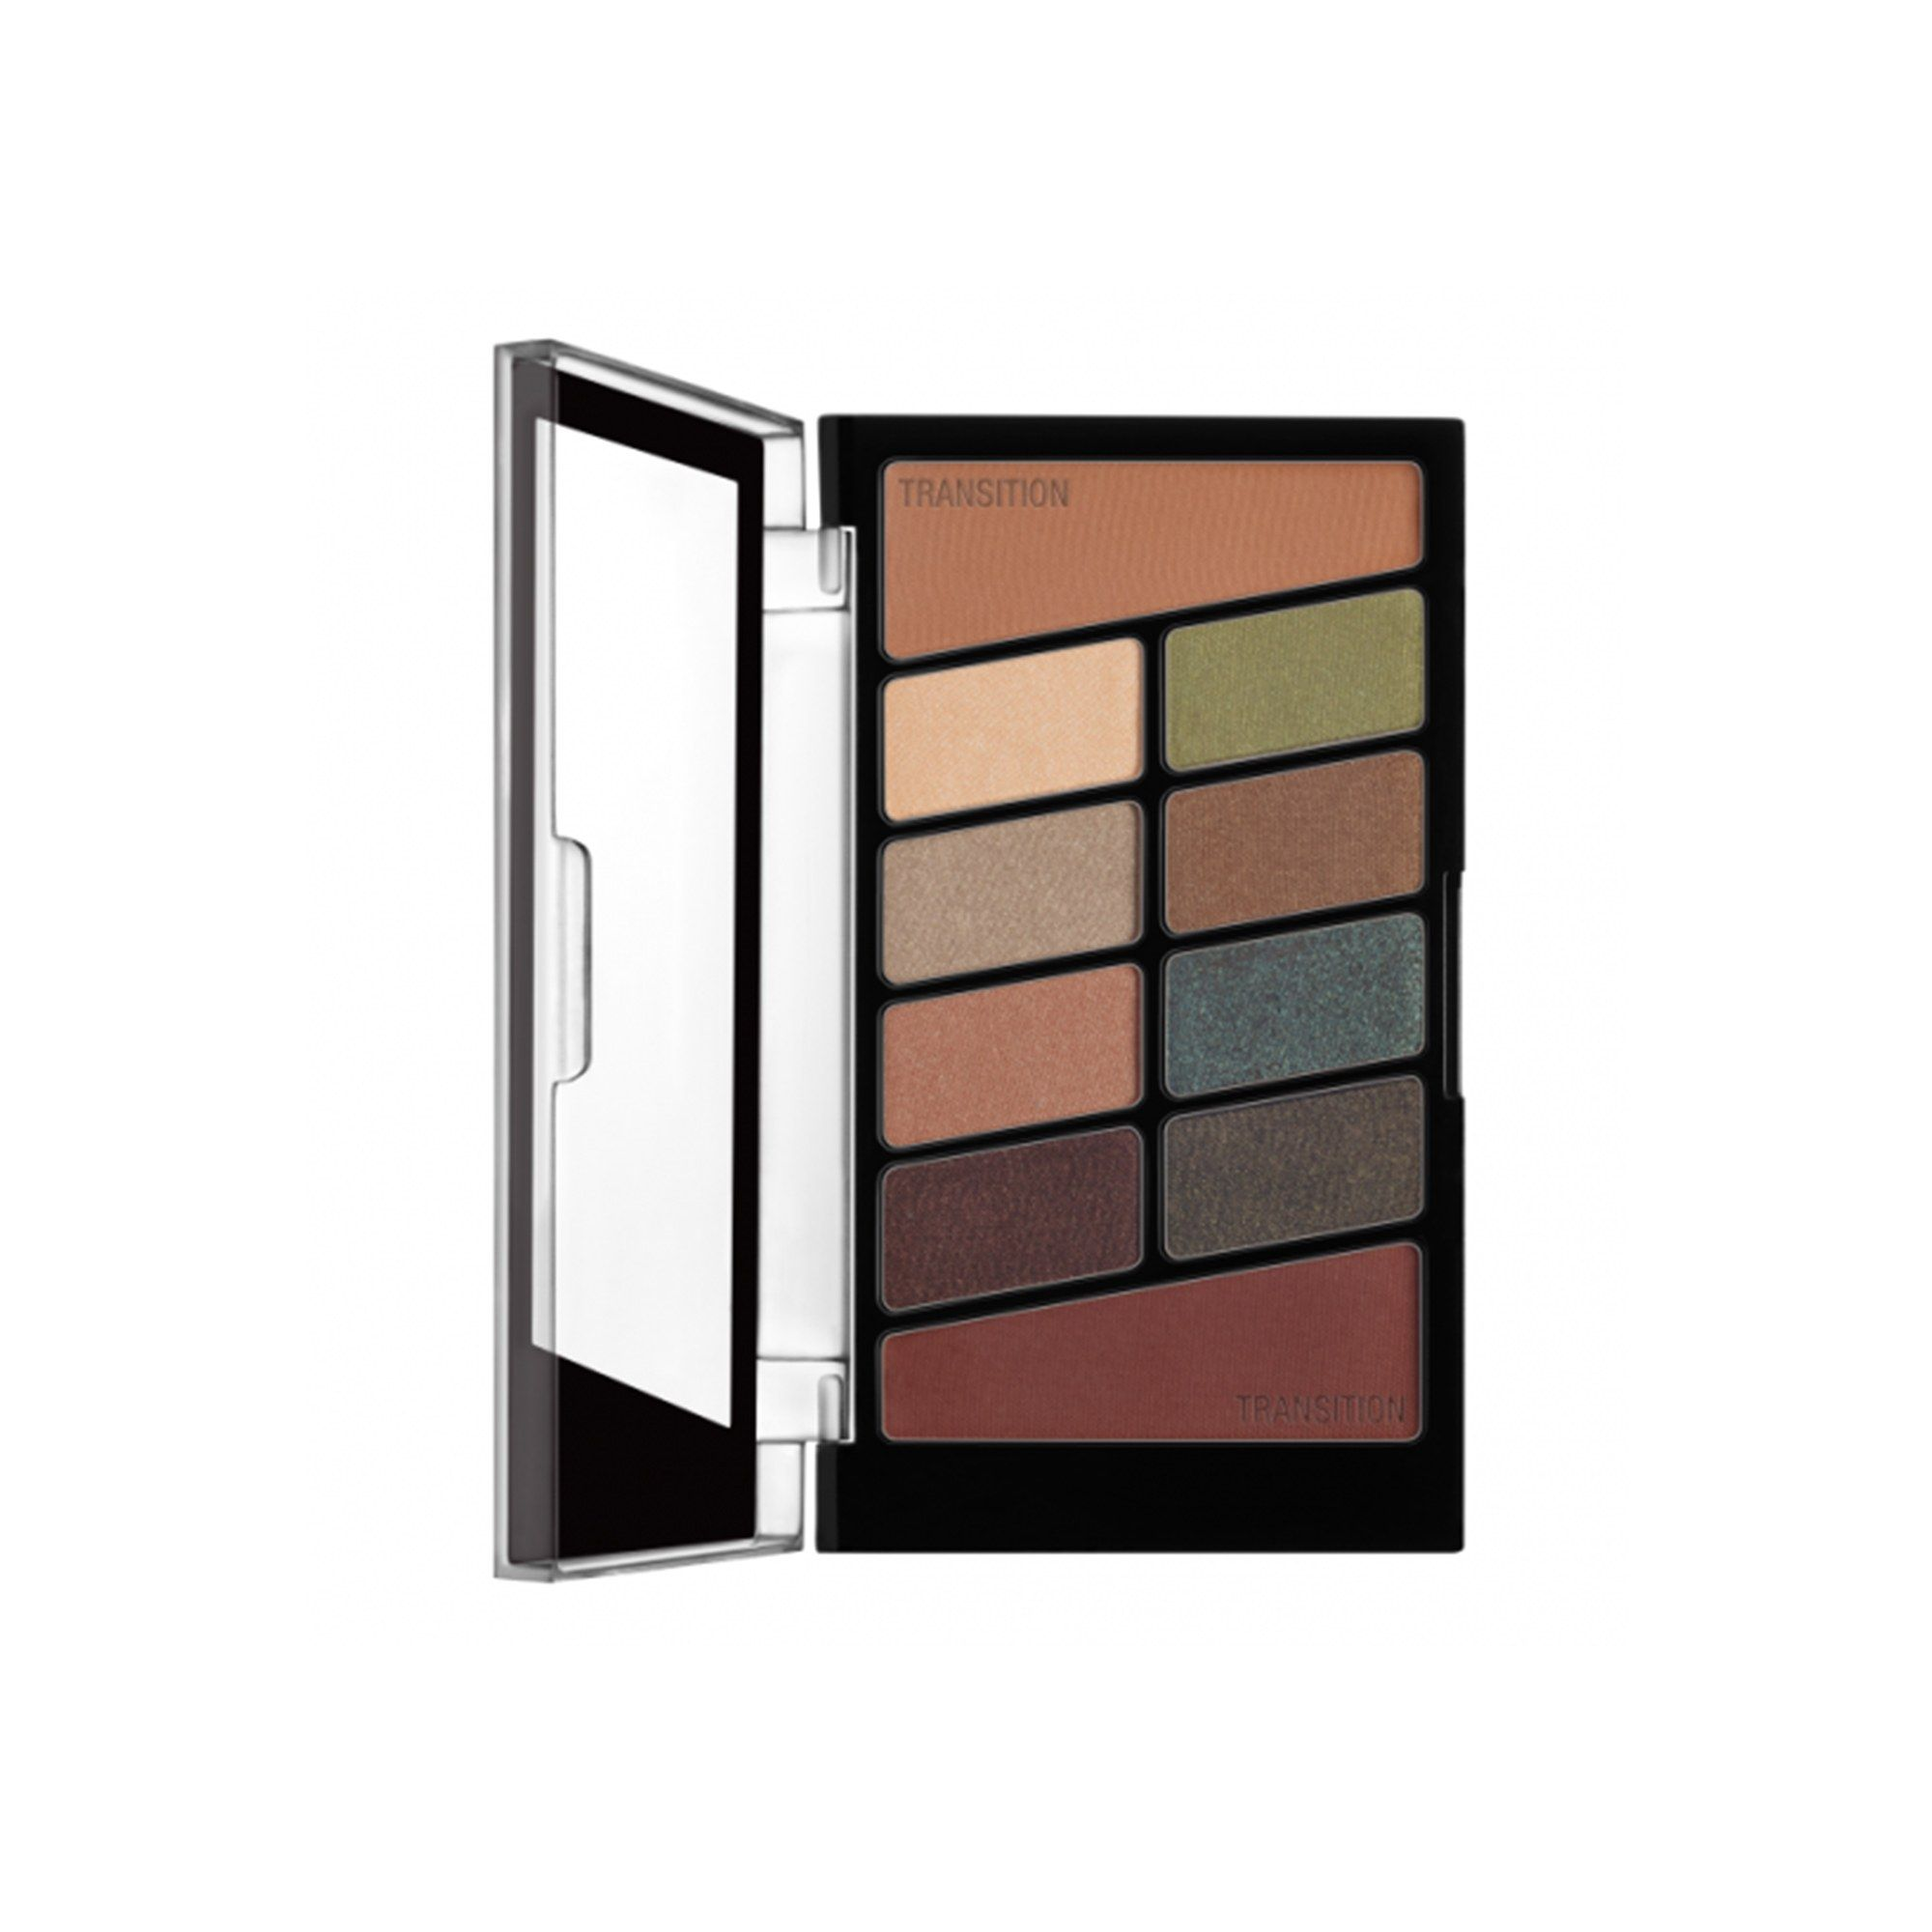 This 4 Eye Shadow Palette Is Just as Amazing as the